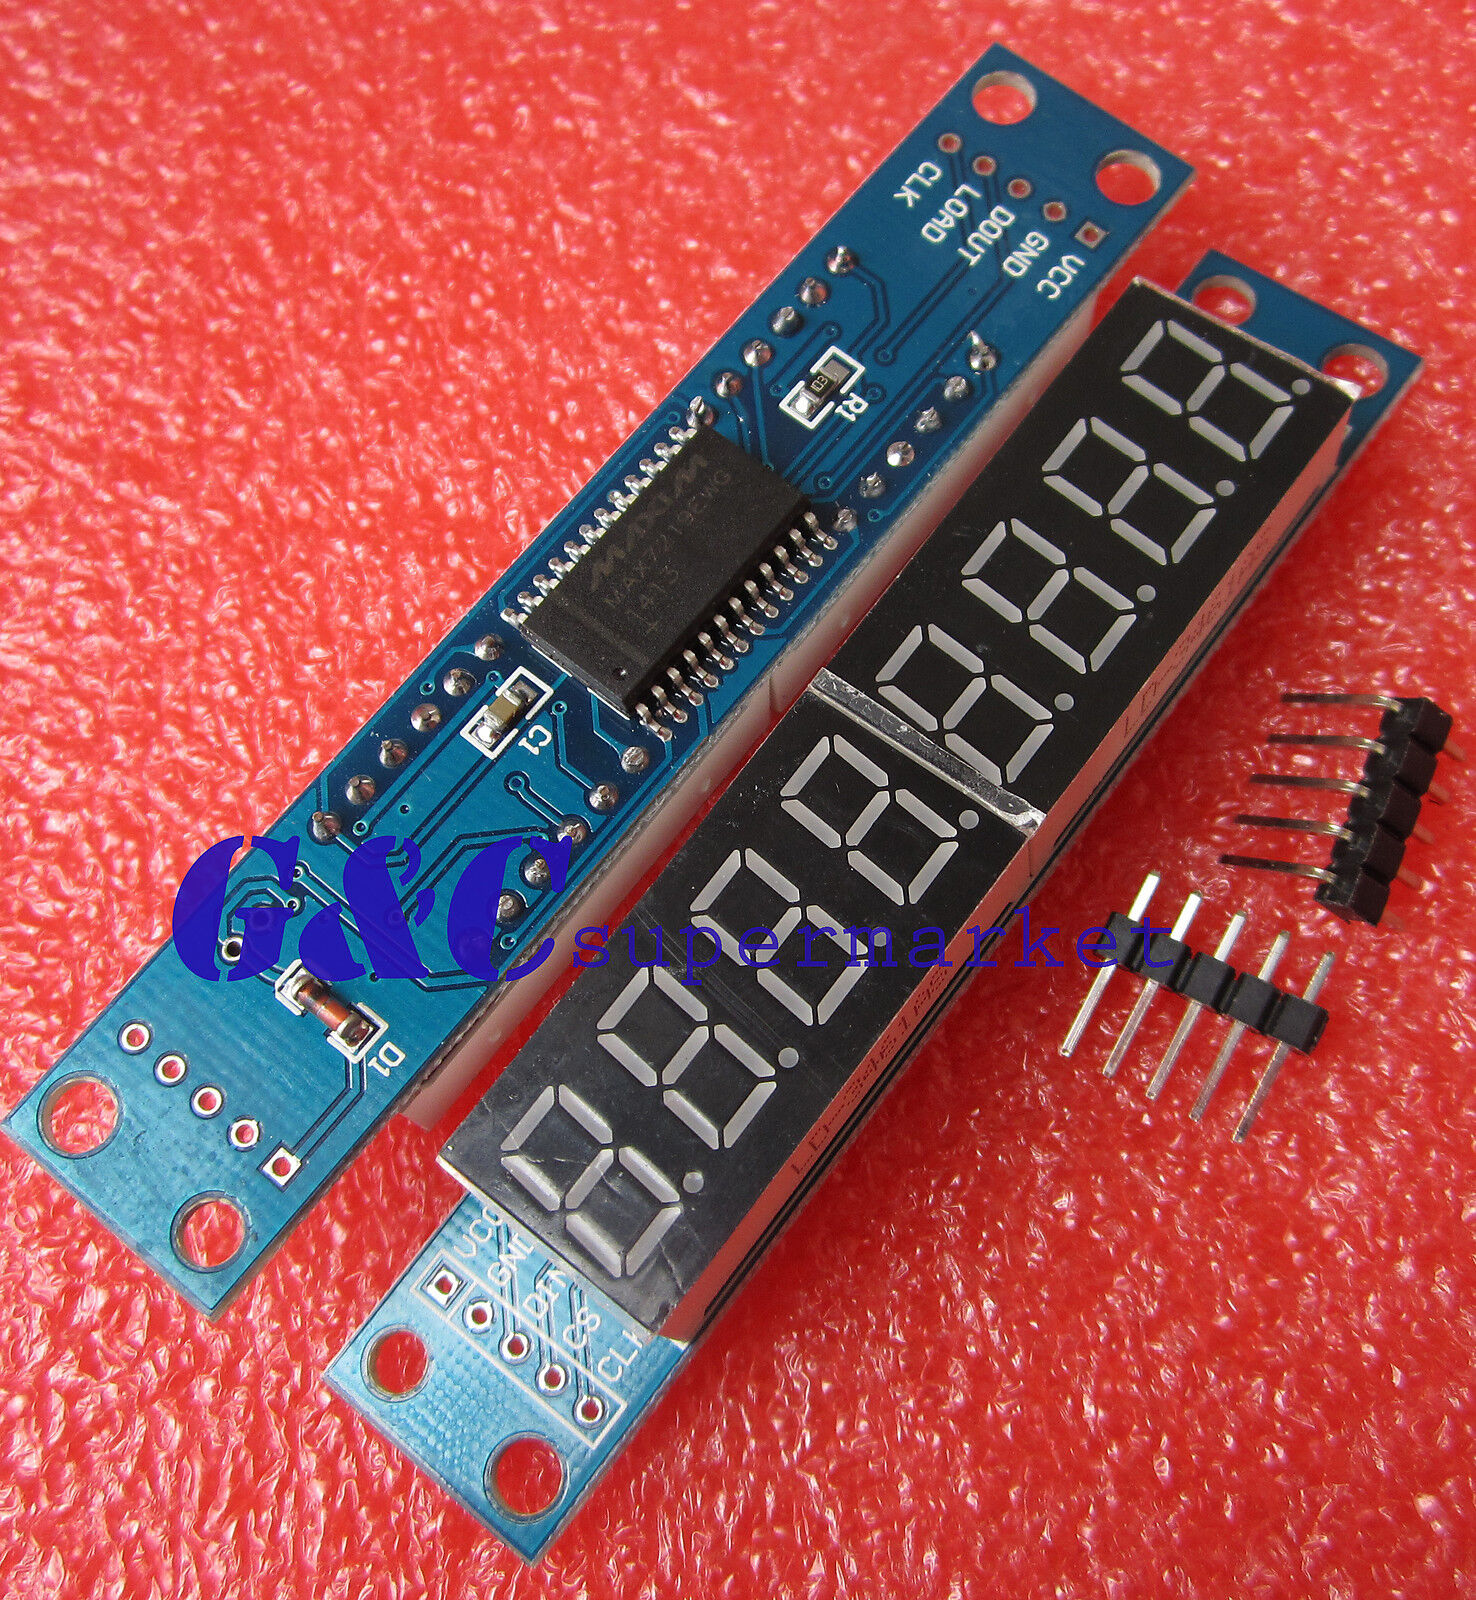 Max7219 Led Driver Goes Blank After A Few Hours Matrix Schematic Verification Forum Im Using One Of These